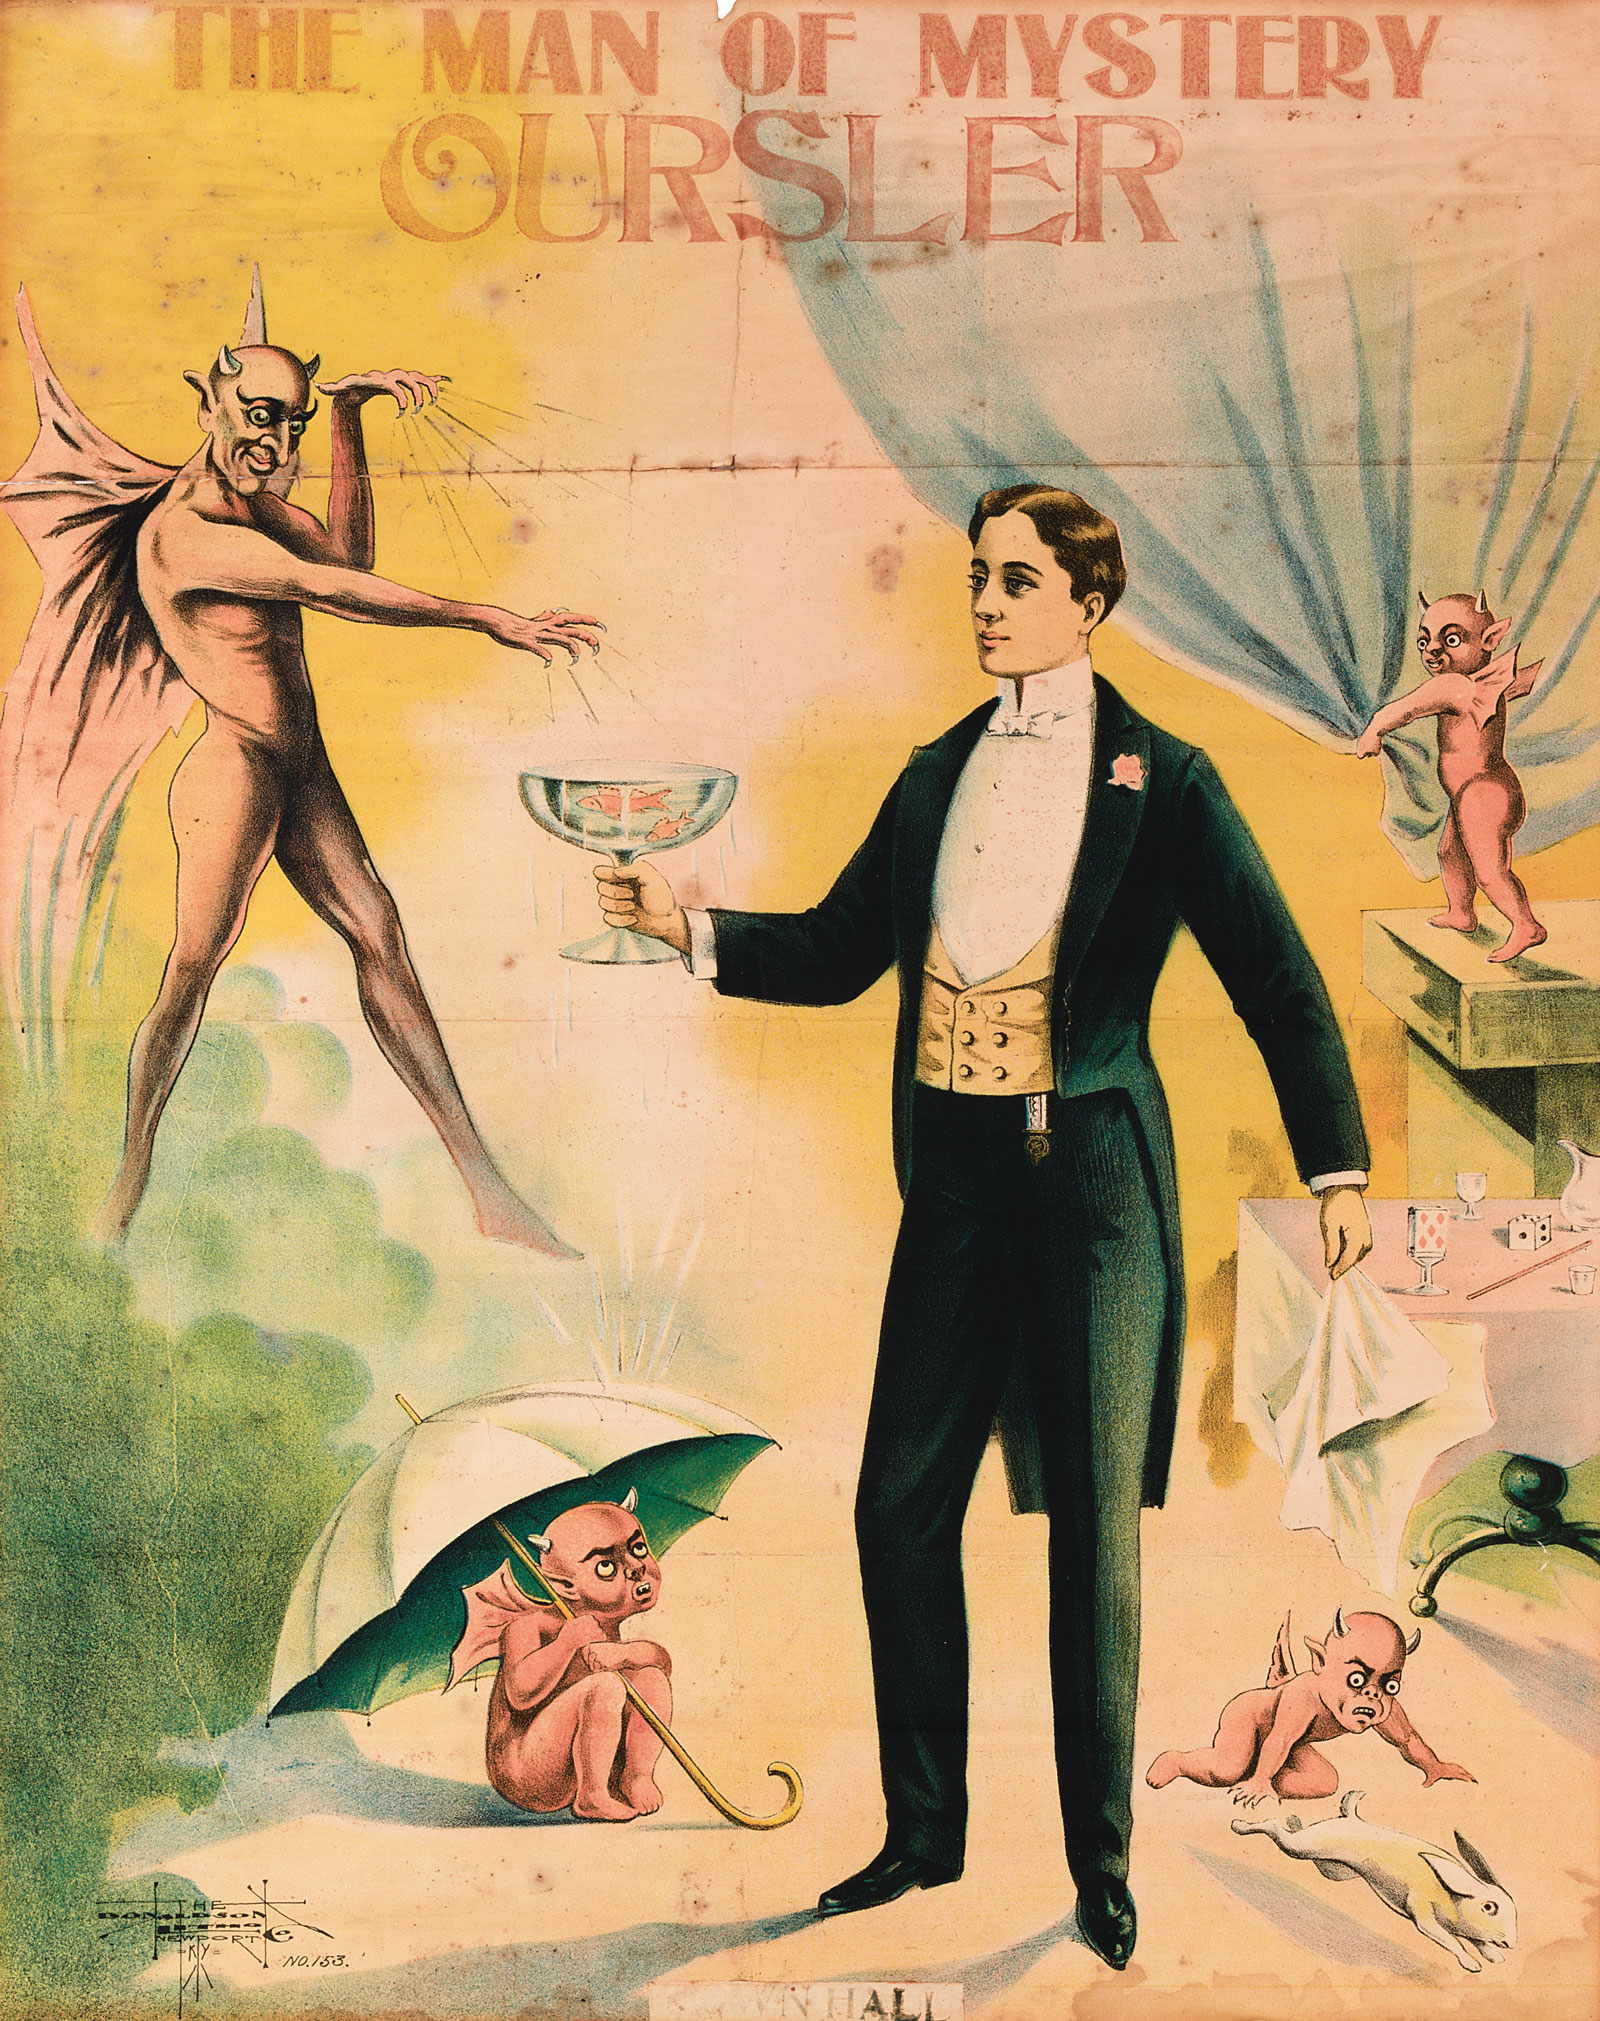 A poster for stage magician Fulton Oursler, circa 1920